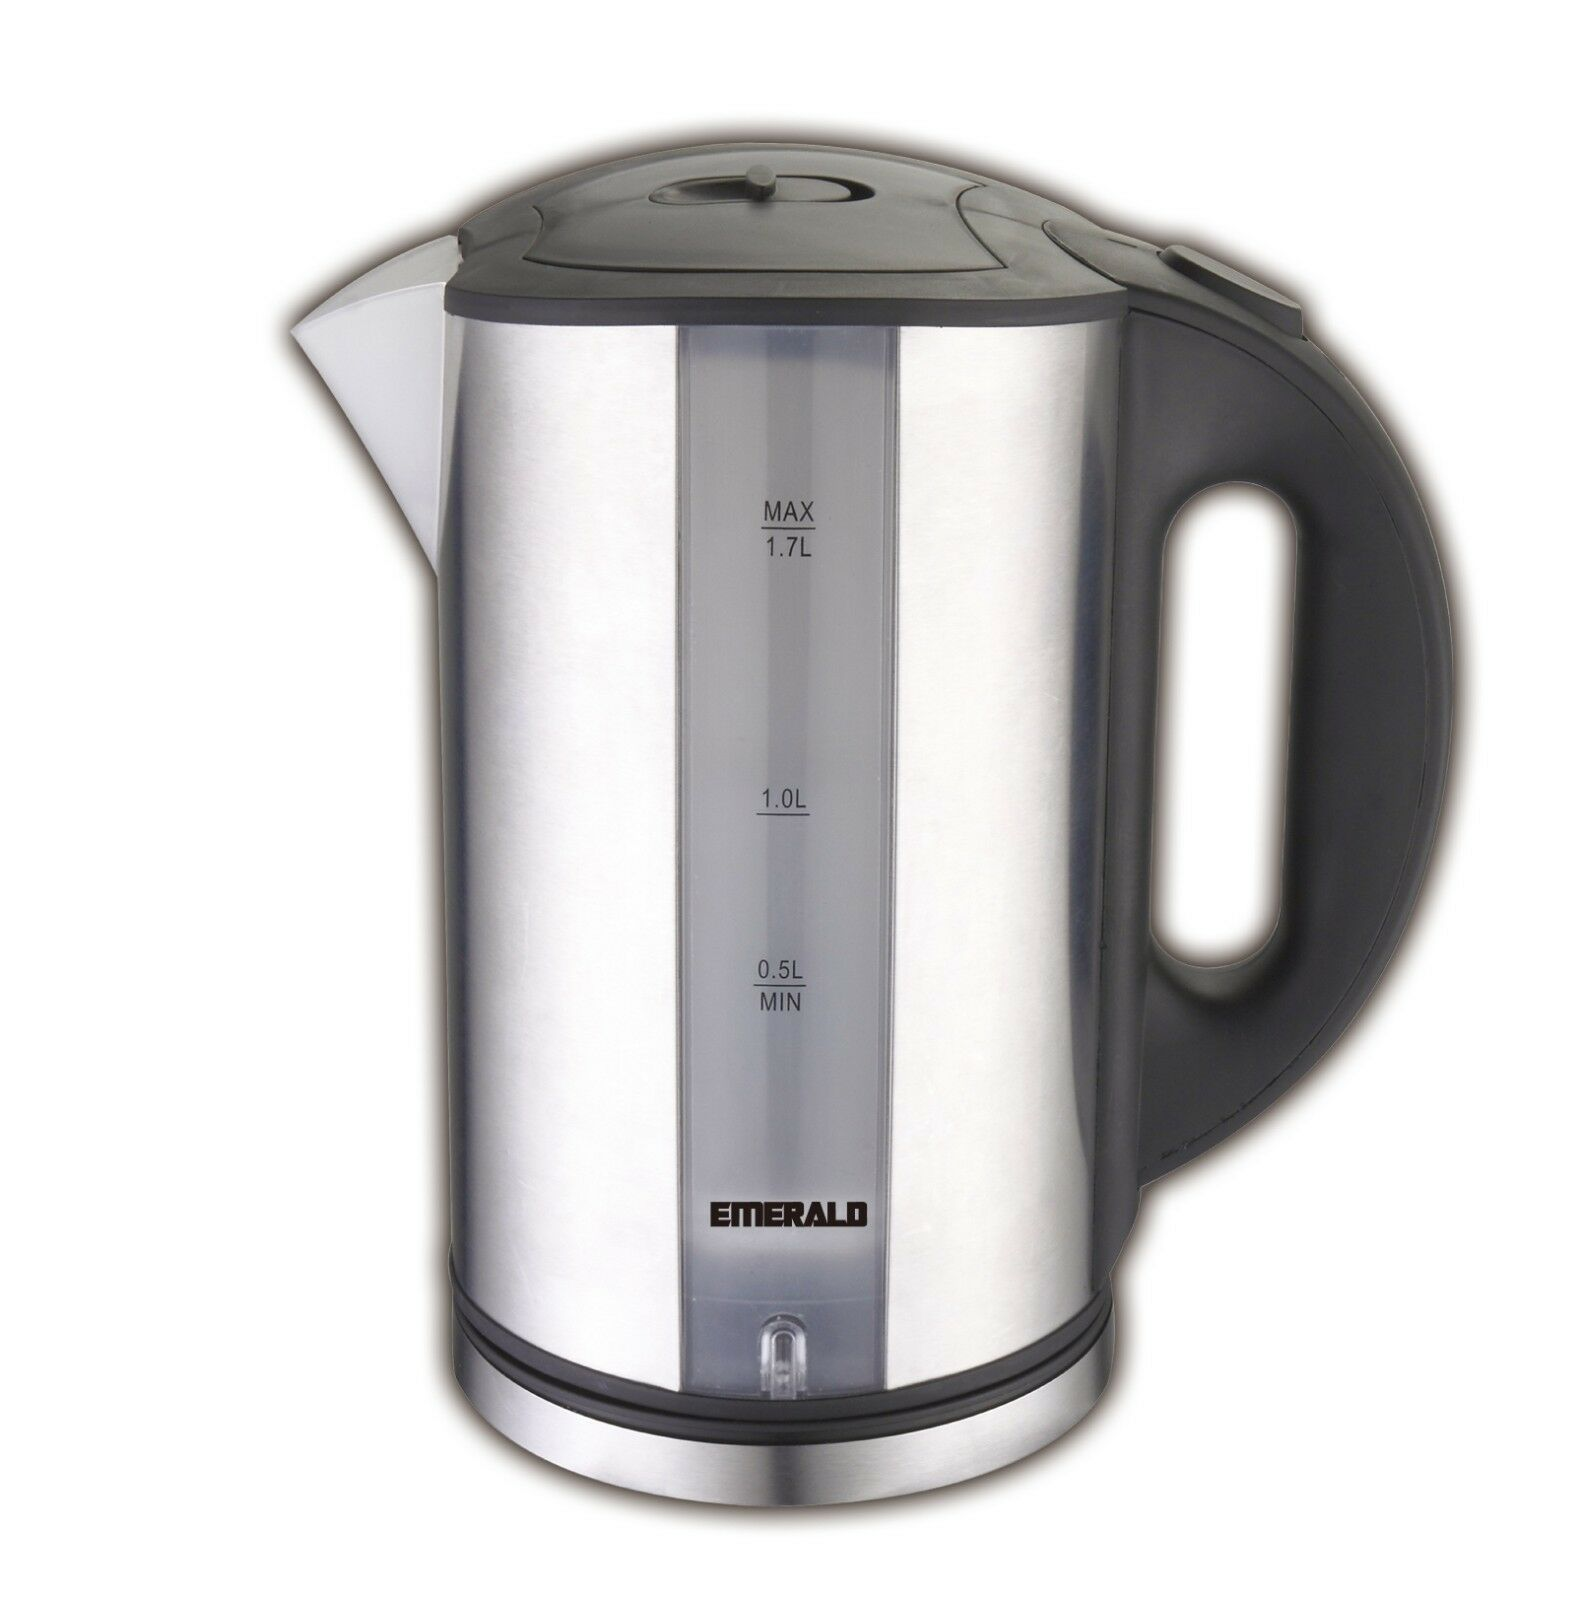 Emerald 1.7L Stainless Steel Electric Tea Kettle with LED